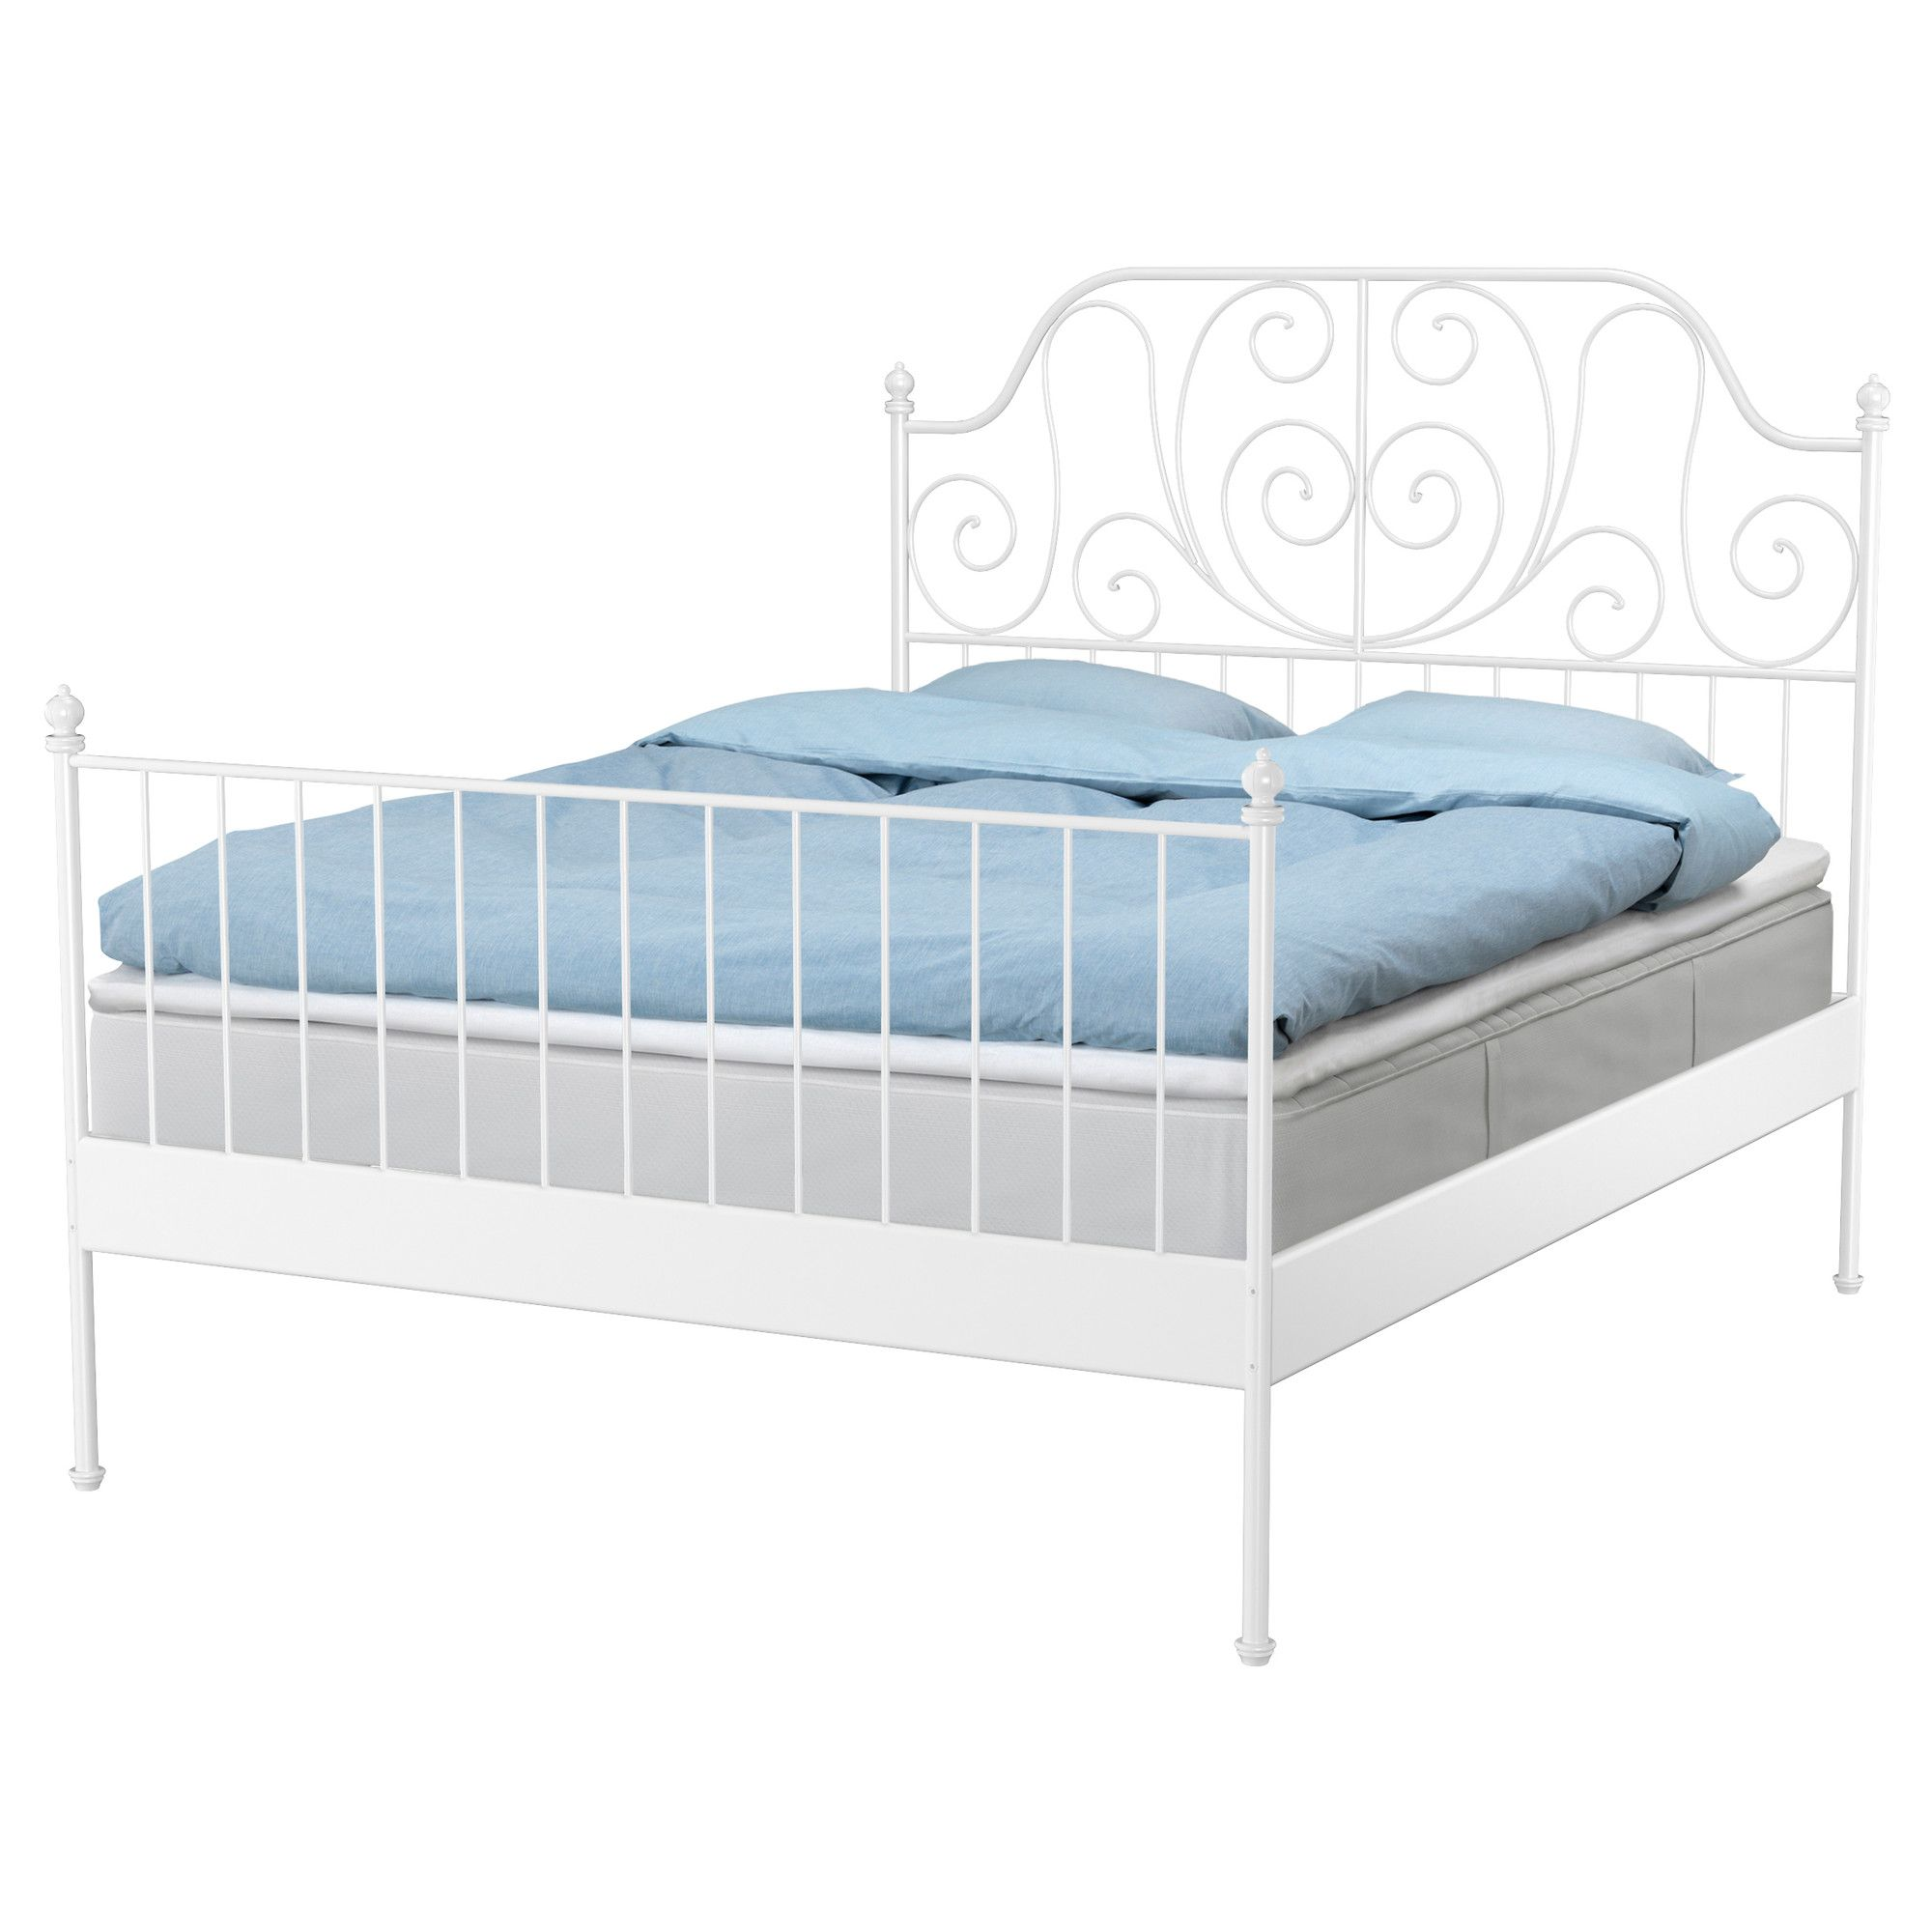 Ikea Iron Bed Depending On Space This Is So Cute Also The Same Price As A